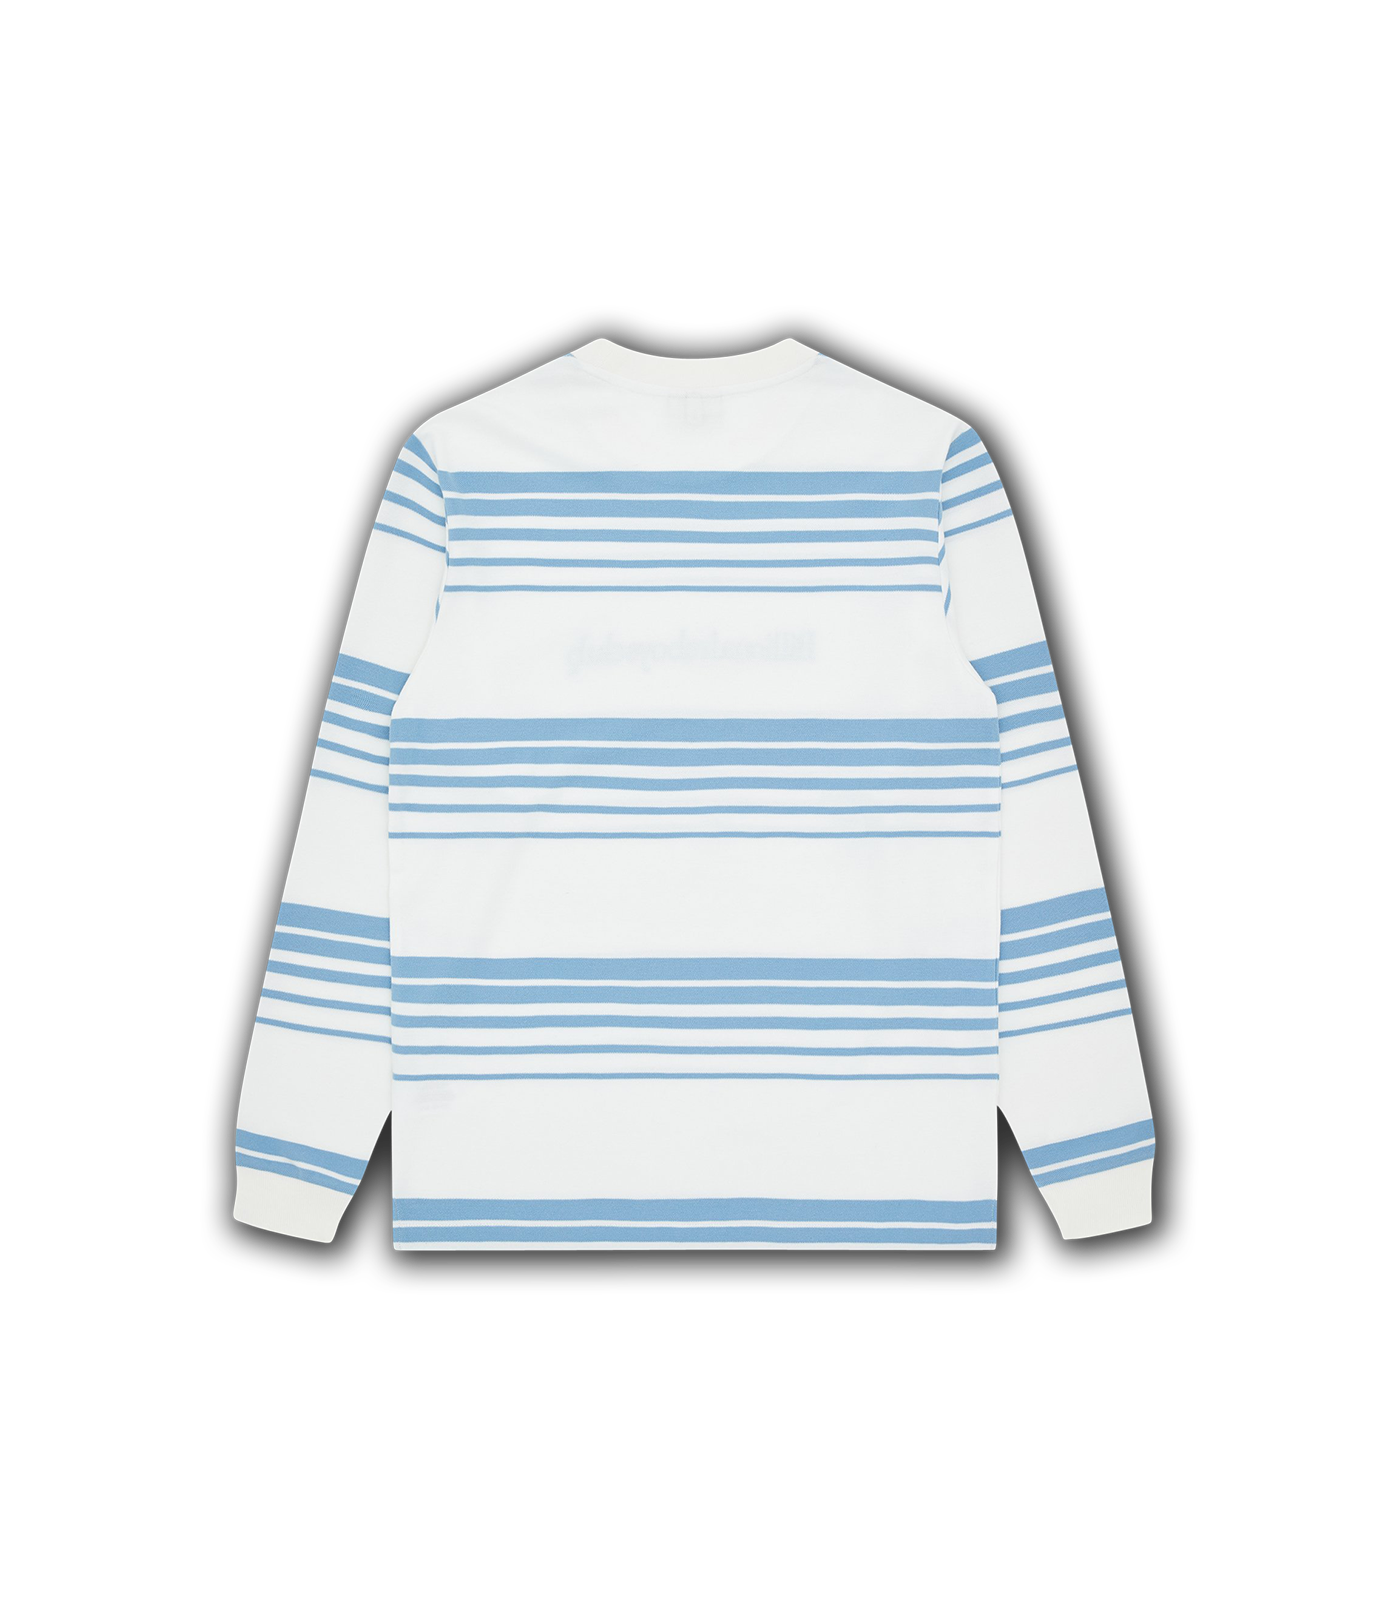 STRIPE KNIT L/S T-SHIRT - WHITE